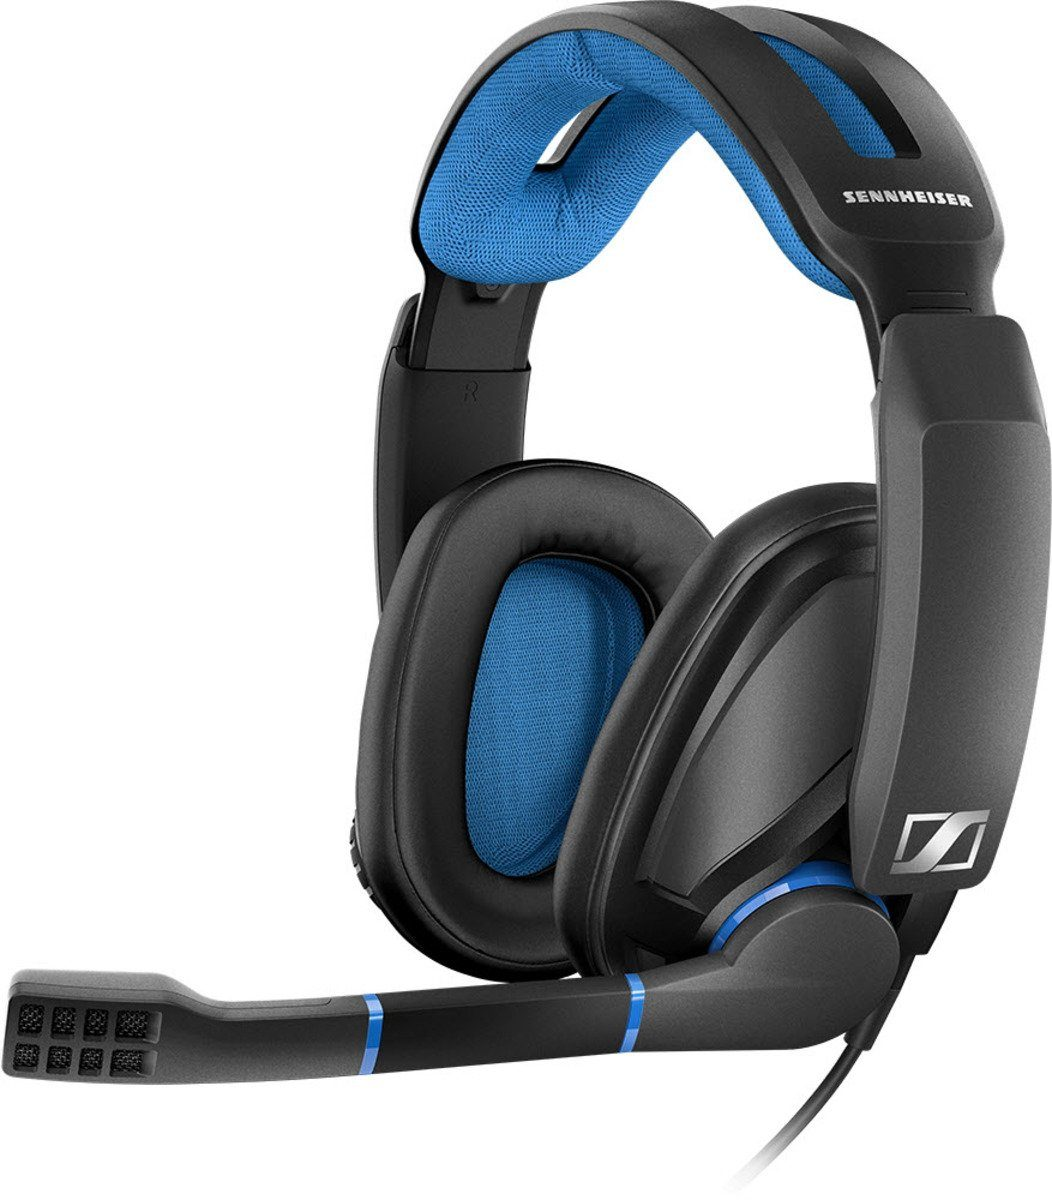 Sennheiser Gaming-Headset »GSP 300 - für PC, Mac, PS4 & Multi-platform«